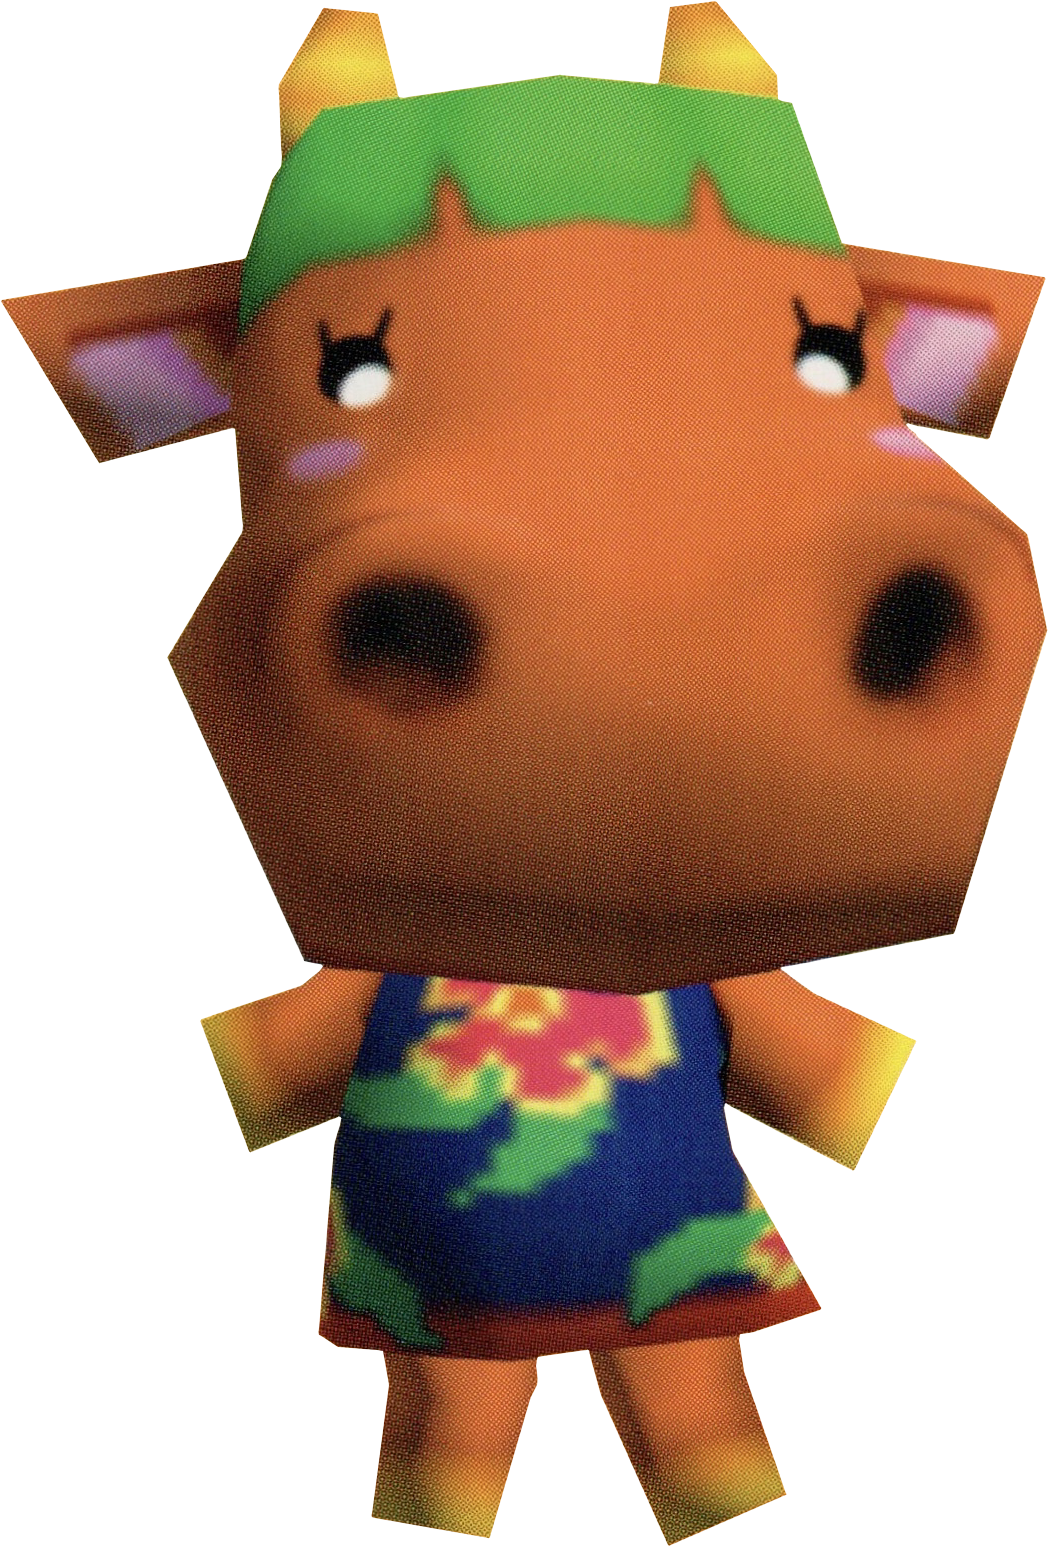 Artwork of Carrot the Cow